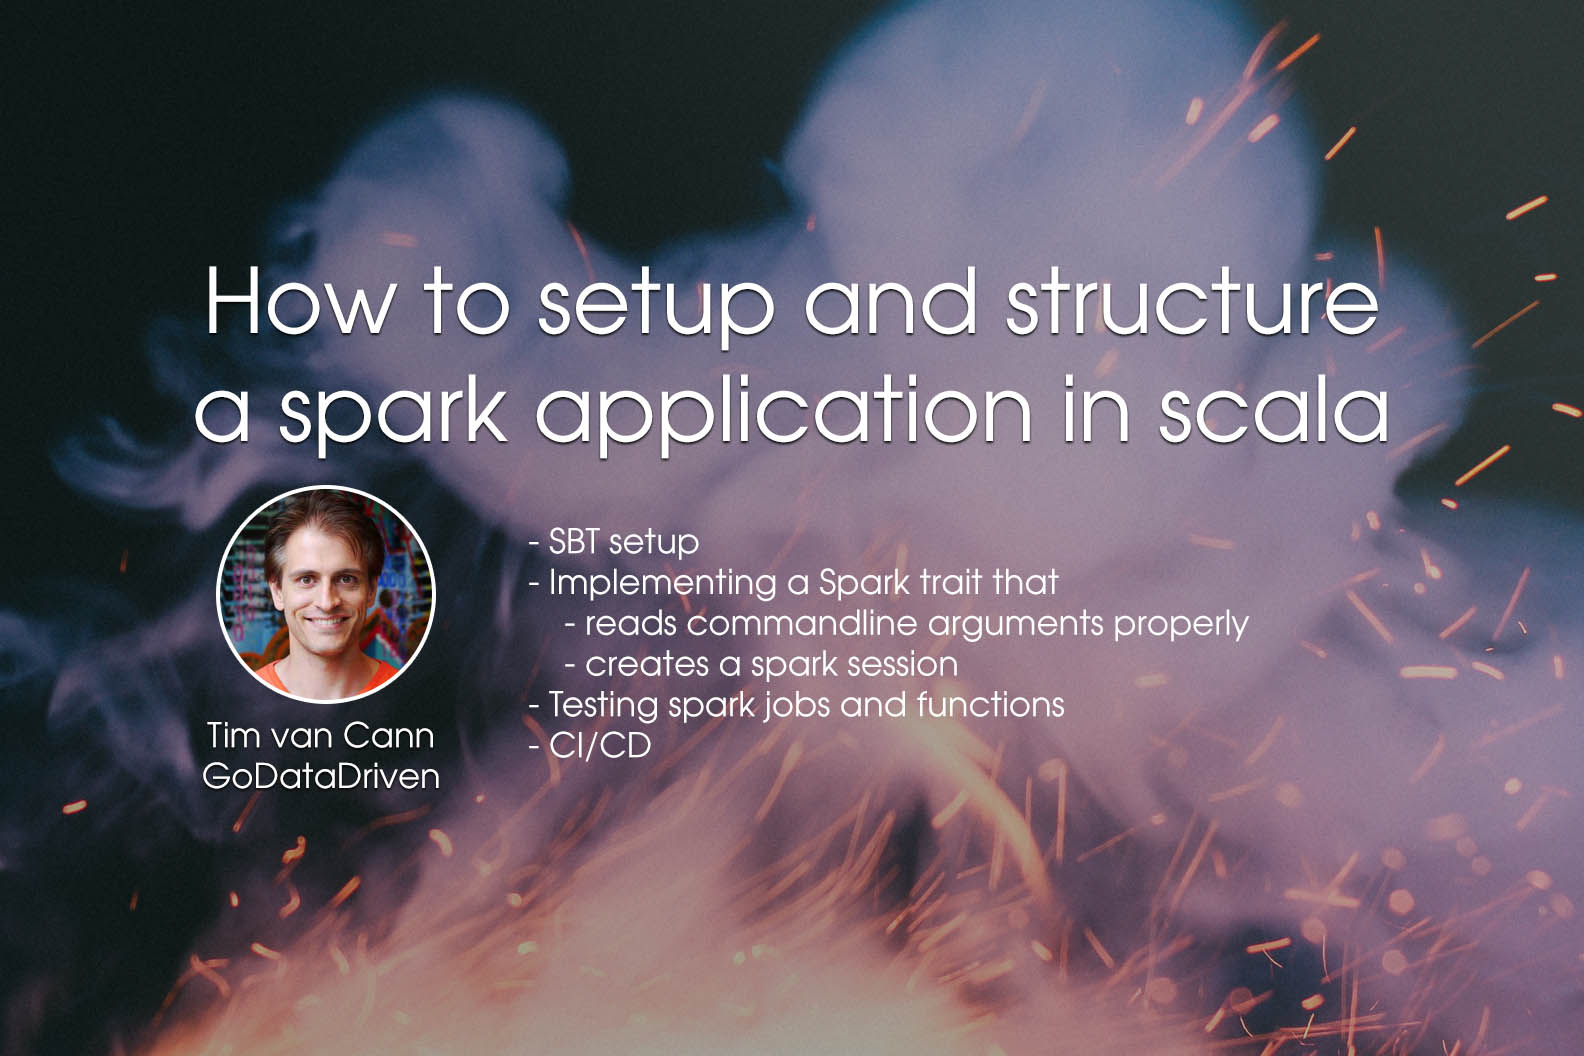 Spark Scala Application - Tim van Cann - GoDataDriven